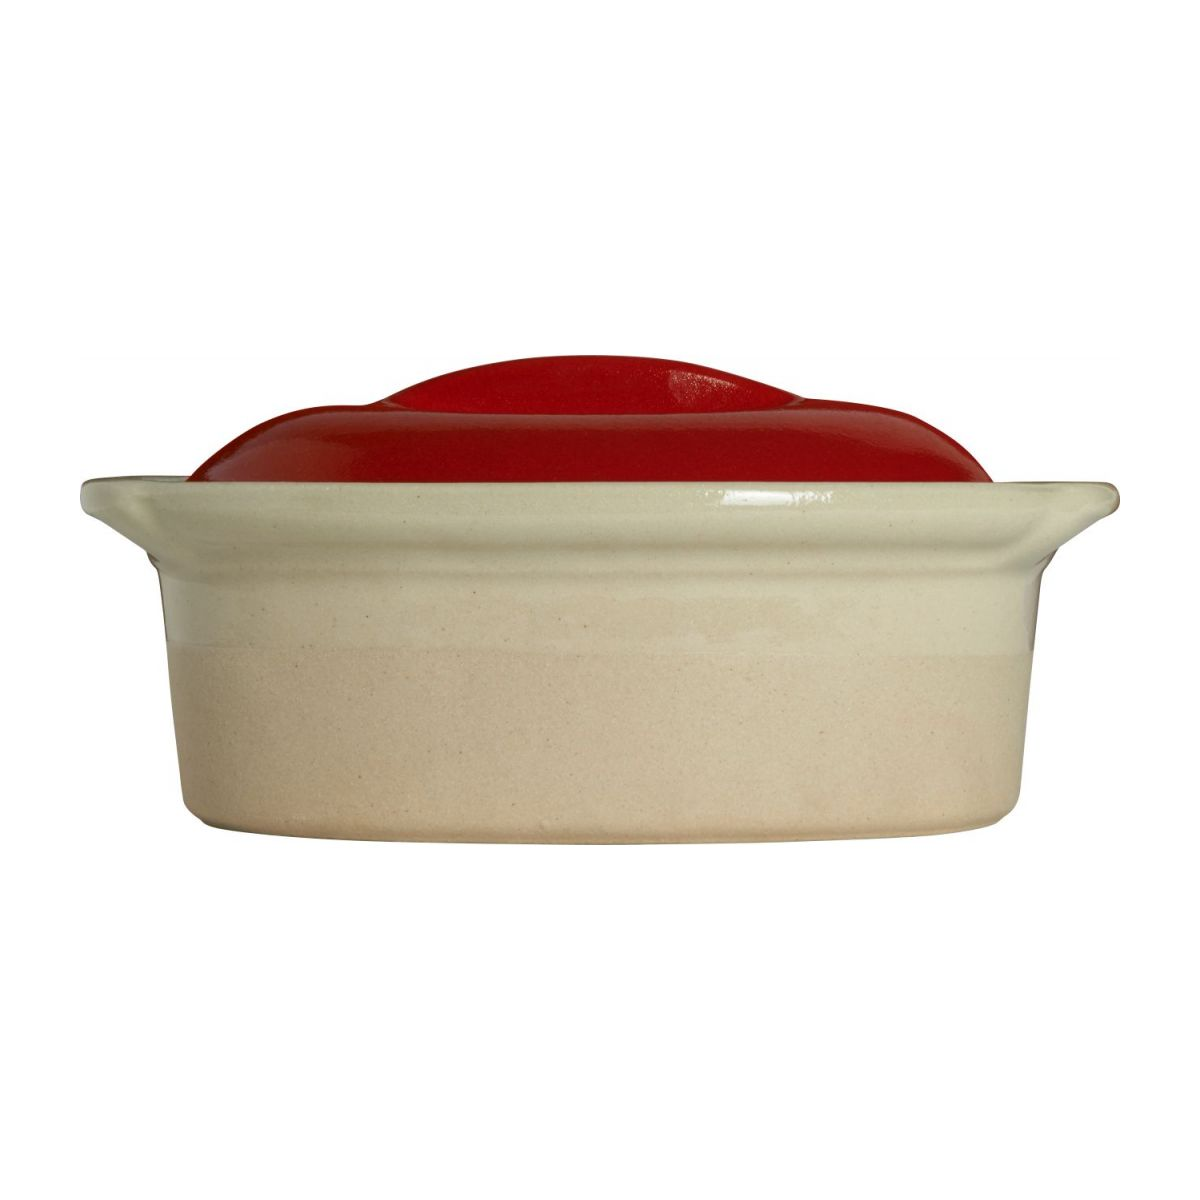 Terrine plate made in sandstone, natural and red n°4